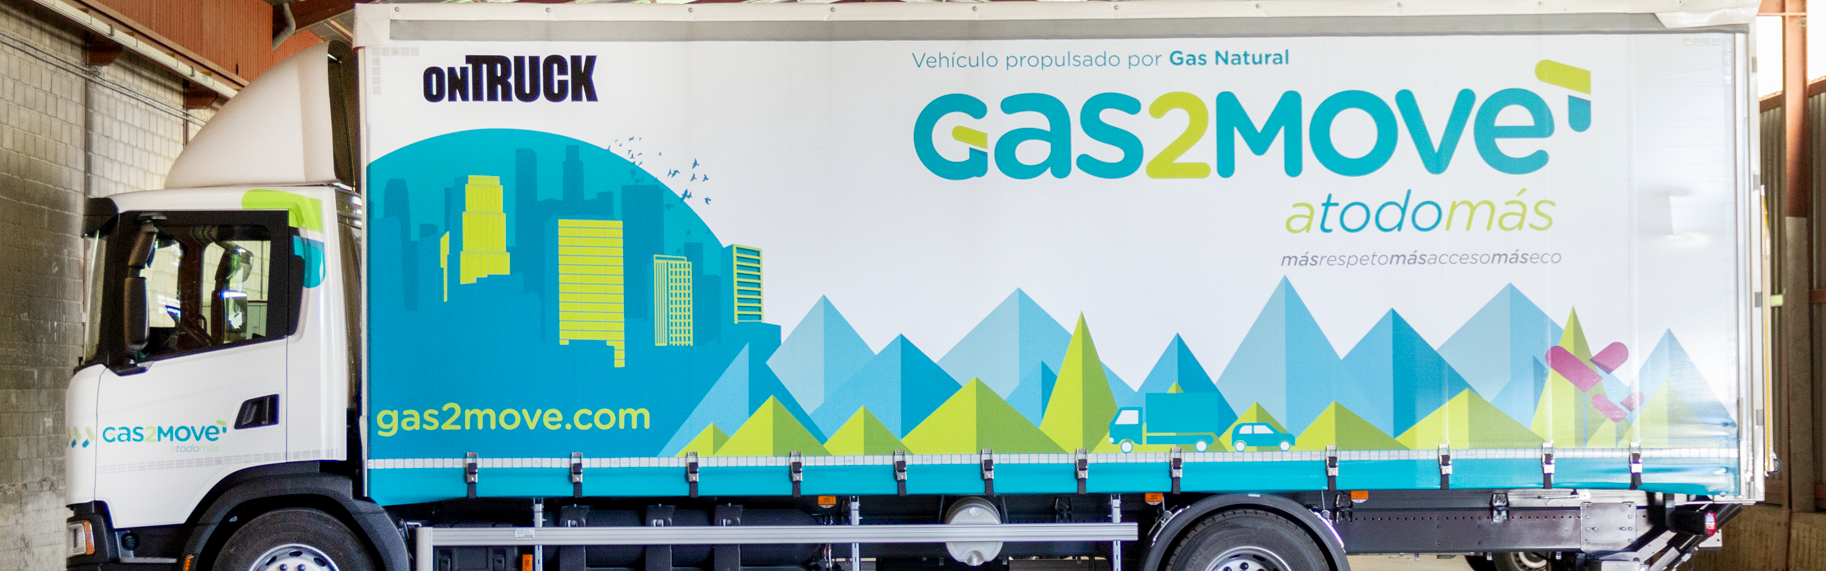 foto Ontruck Gas2Move .png